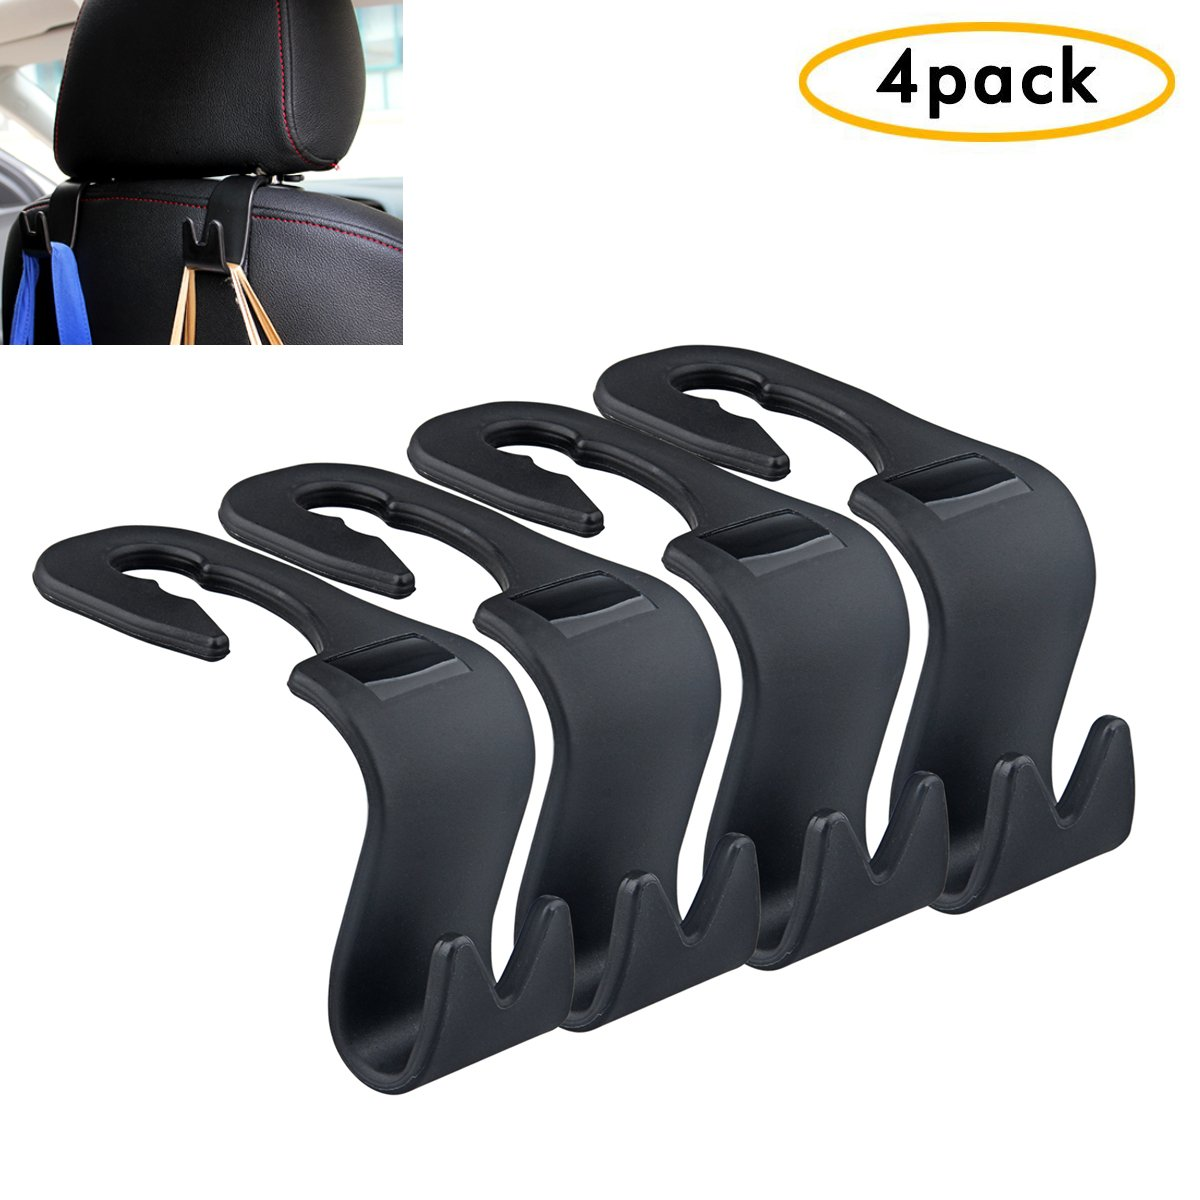 (Set of 4) Car Headrest Hanger, Akwox Universal Car Hook 4 Car SUV Back Seat Headrest Hanger Storage Hooks